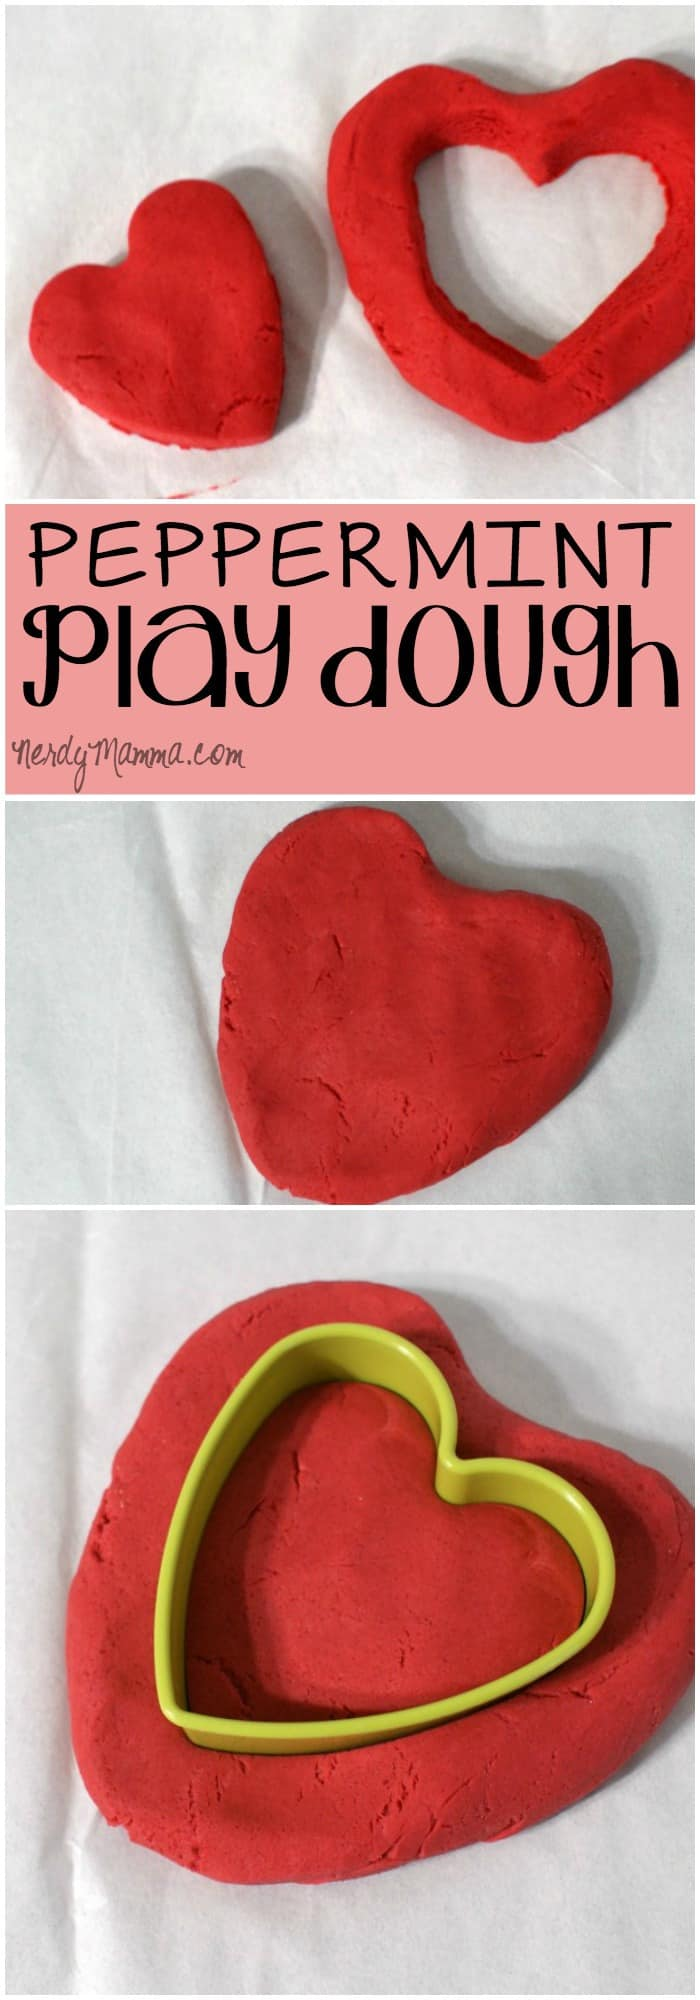 This peppermint play dough recipe is so red, smells so good. It's perfect for holiday clay play or even valentines!